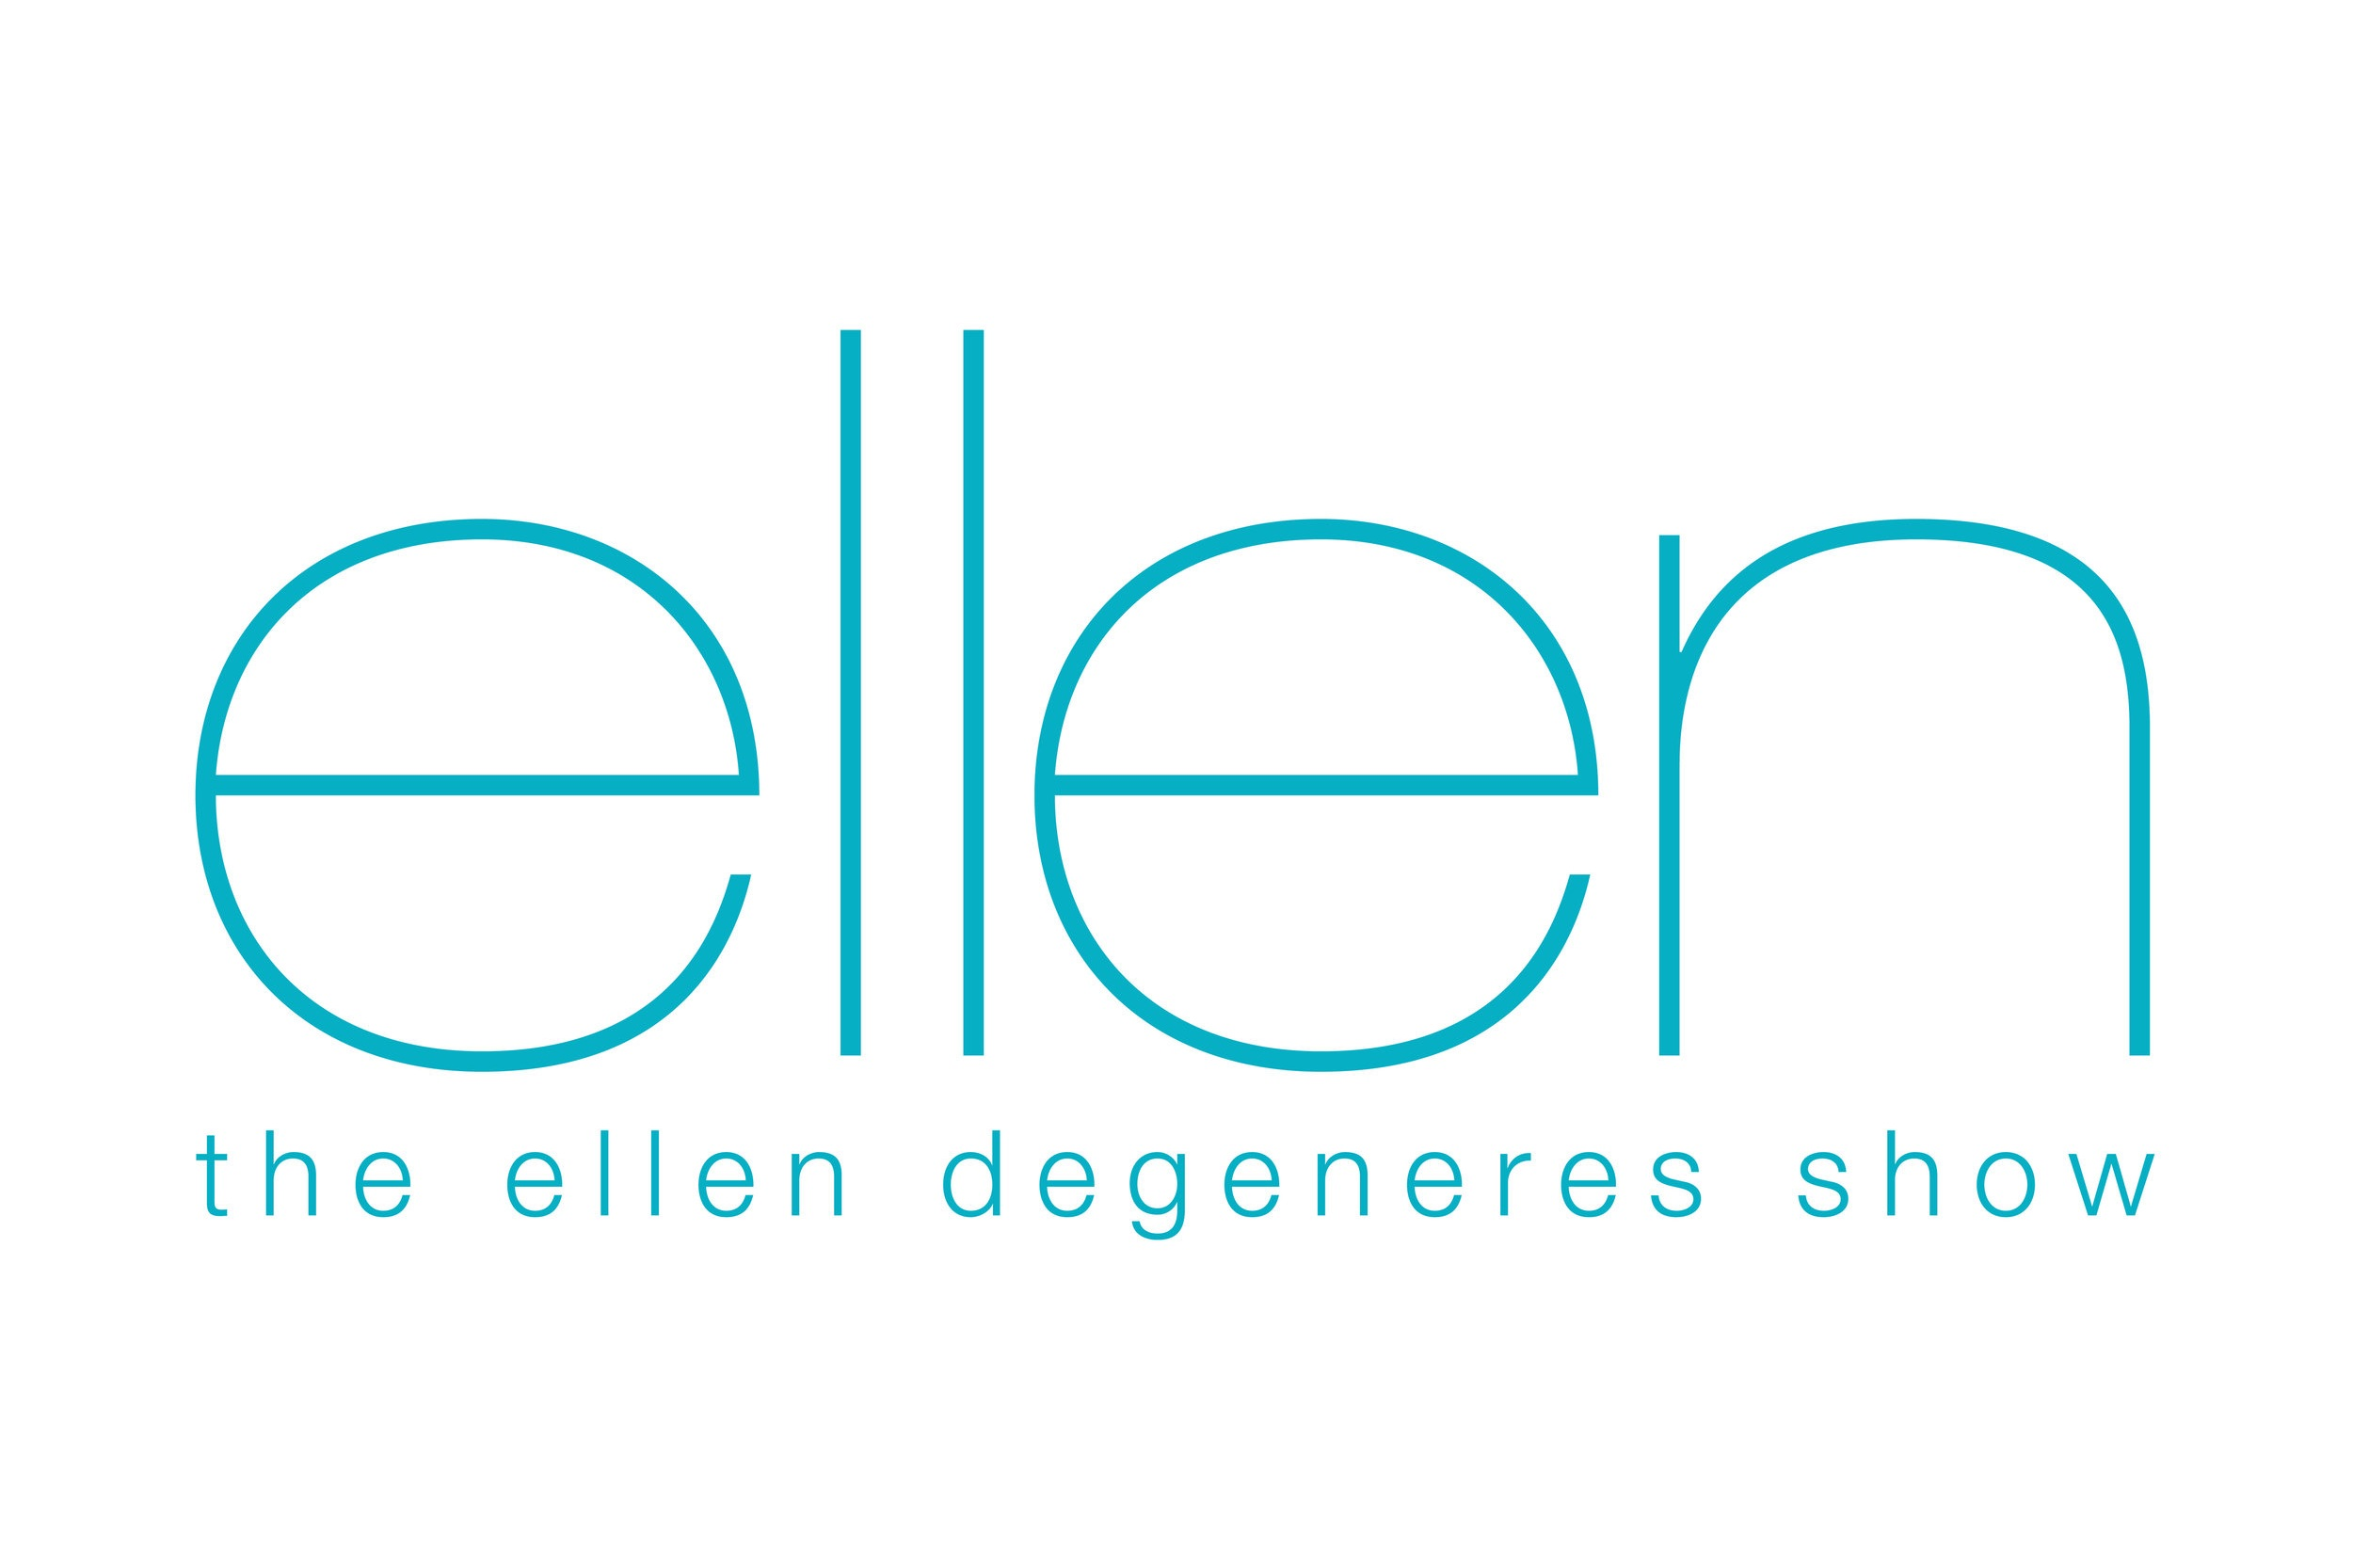 Beardbangs has been featured on the Ellen Degeneres Show